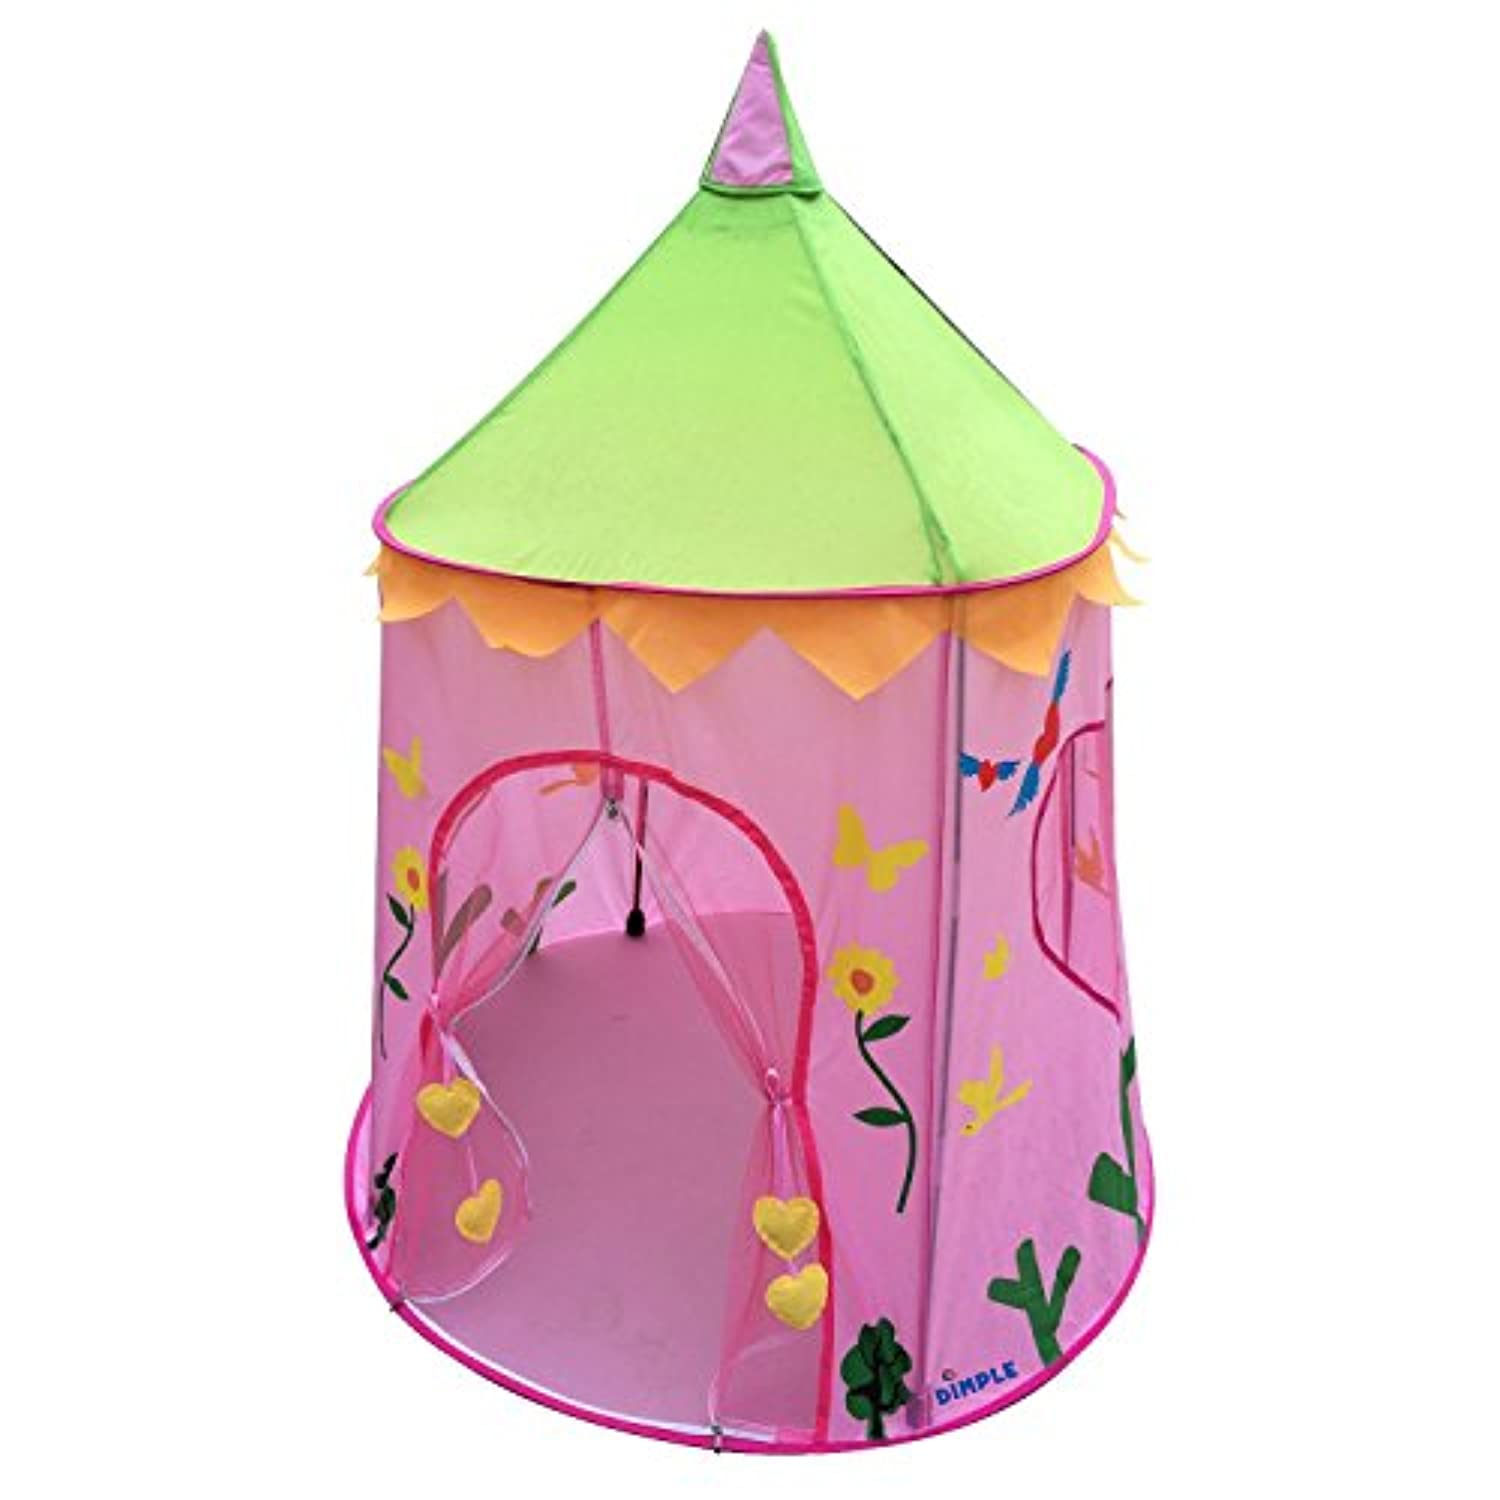 Wonderland Princess Palace Fairy Castle Play Tent by Dimple